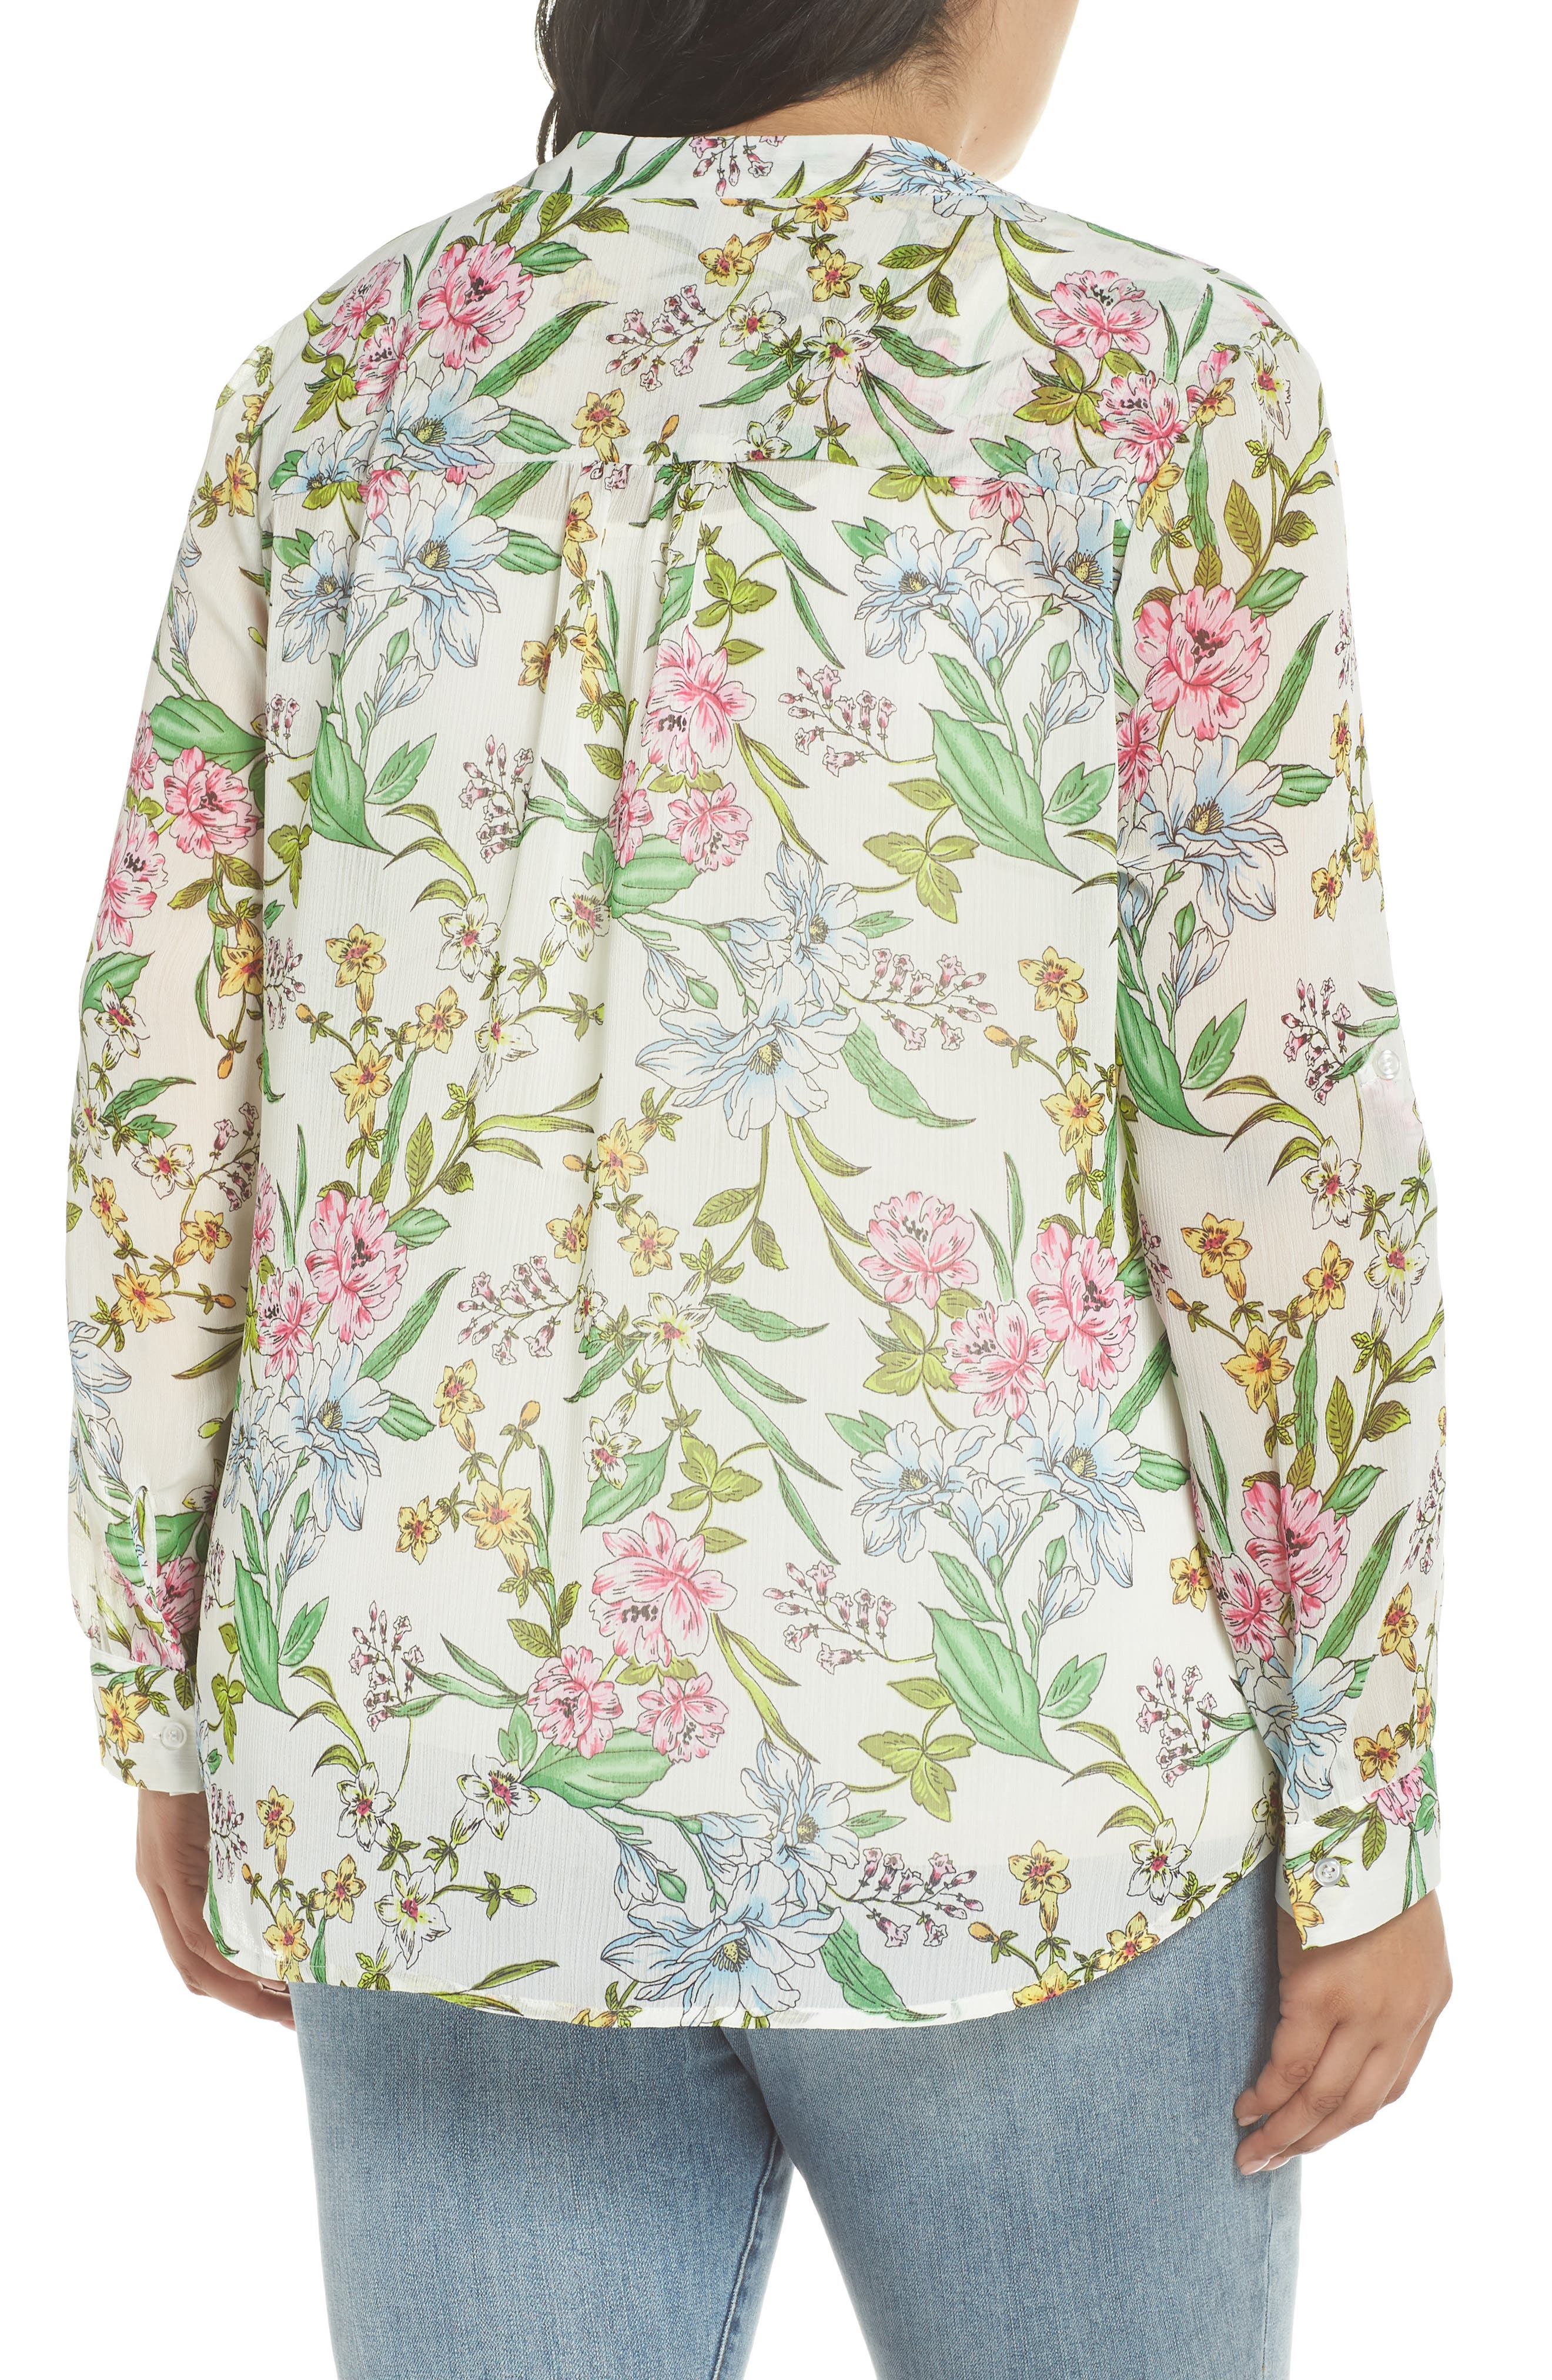 Jasmine Floral Roll Sleeve Top,                             Alternate thumbnail 2, color,                             White/ Green